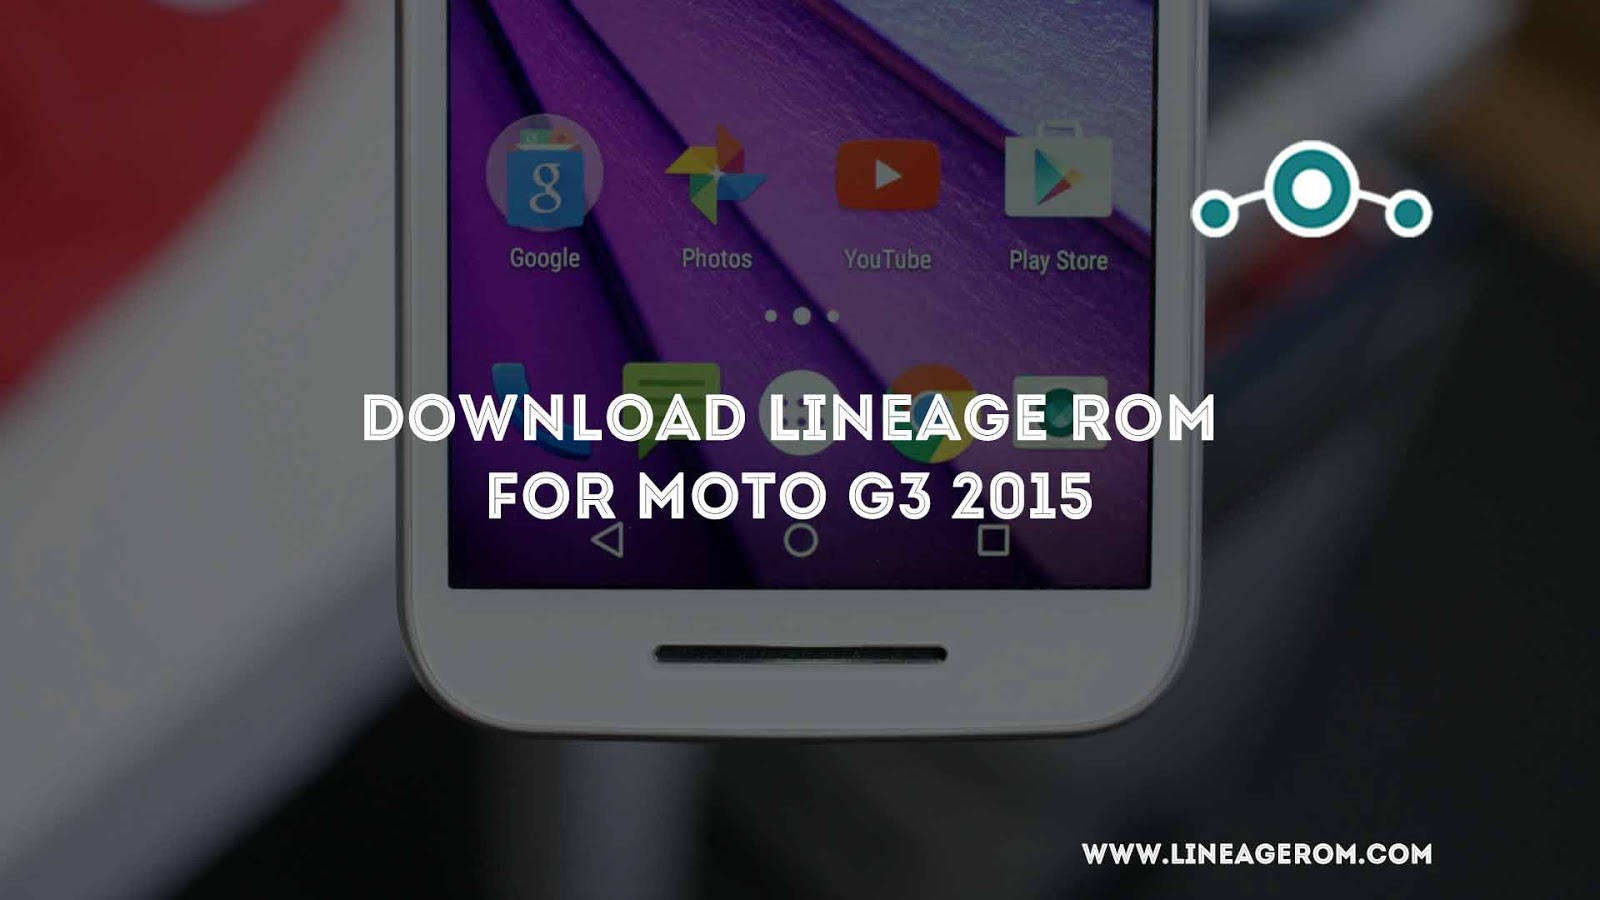 ROM] Download Lineage OS Moto G3 2015 Nougat 7 1 1 [osprey